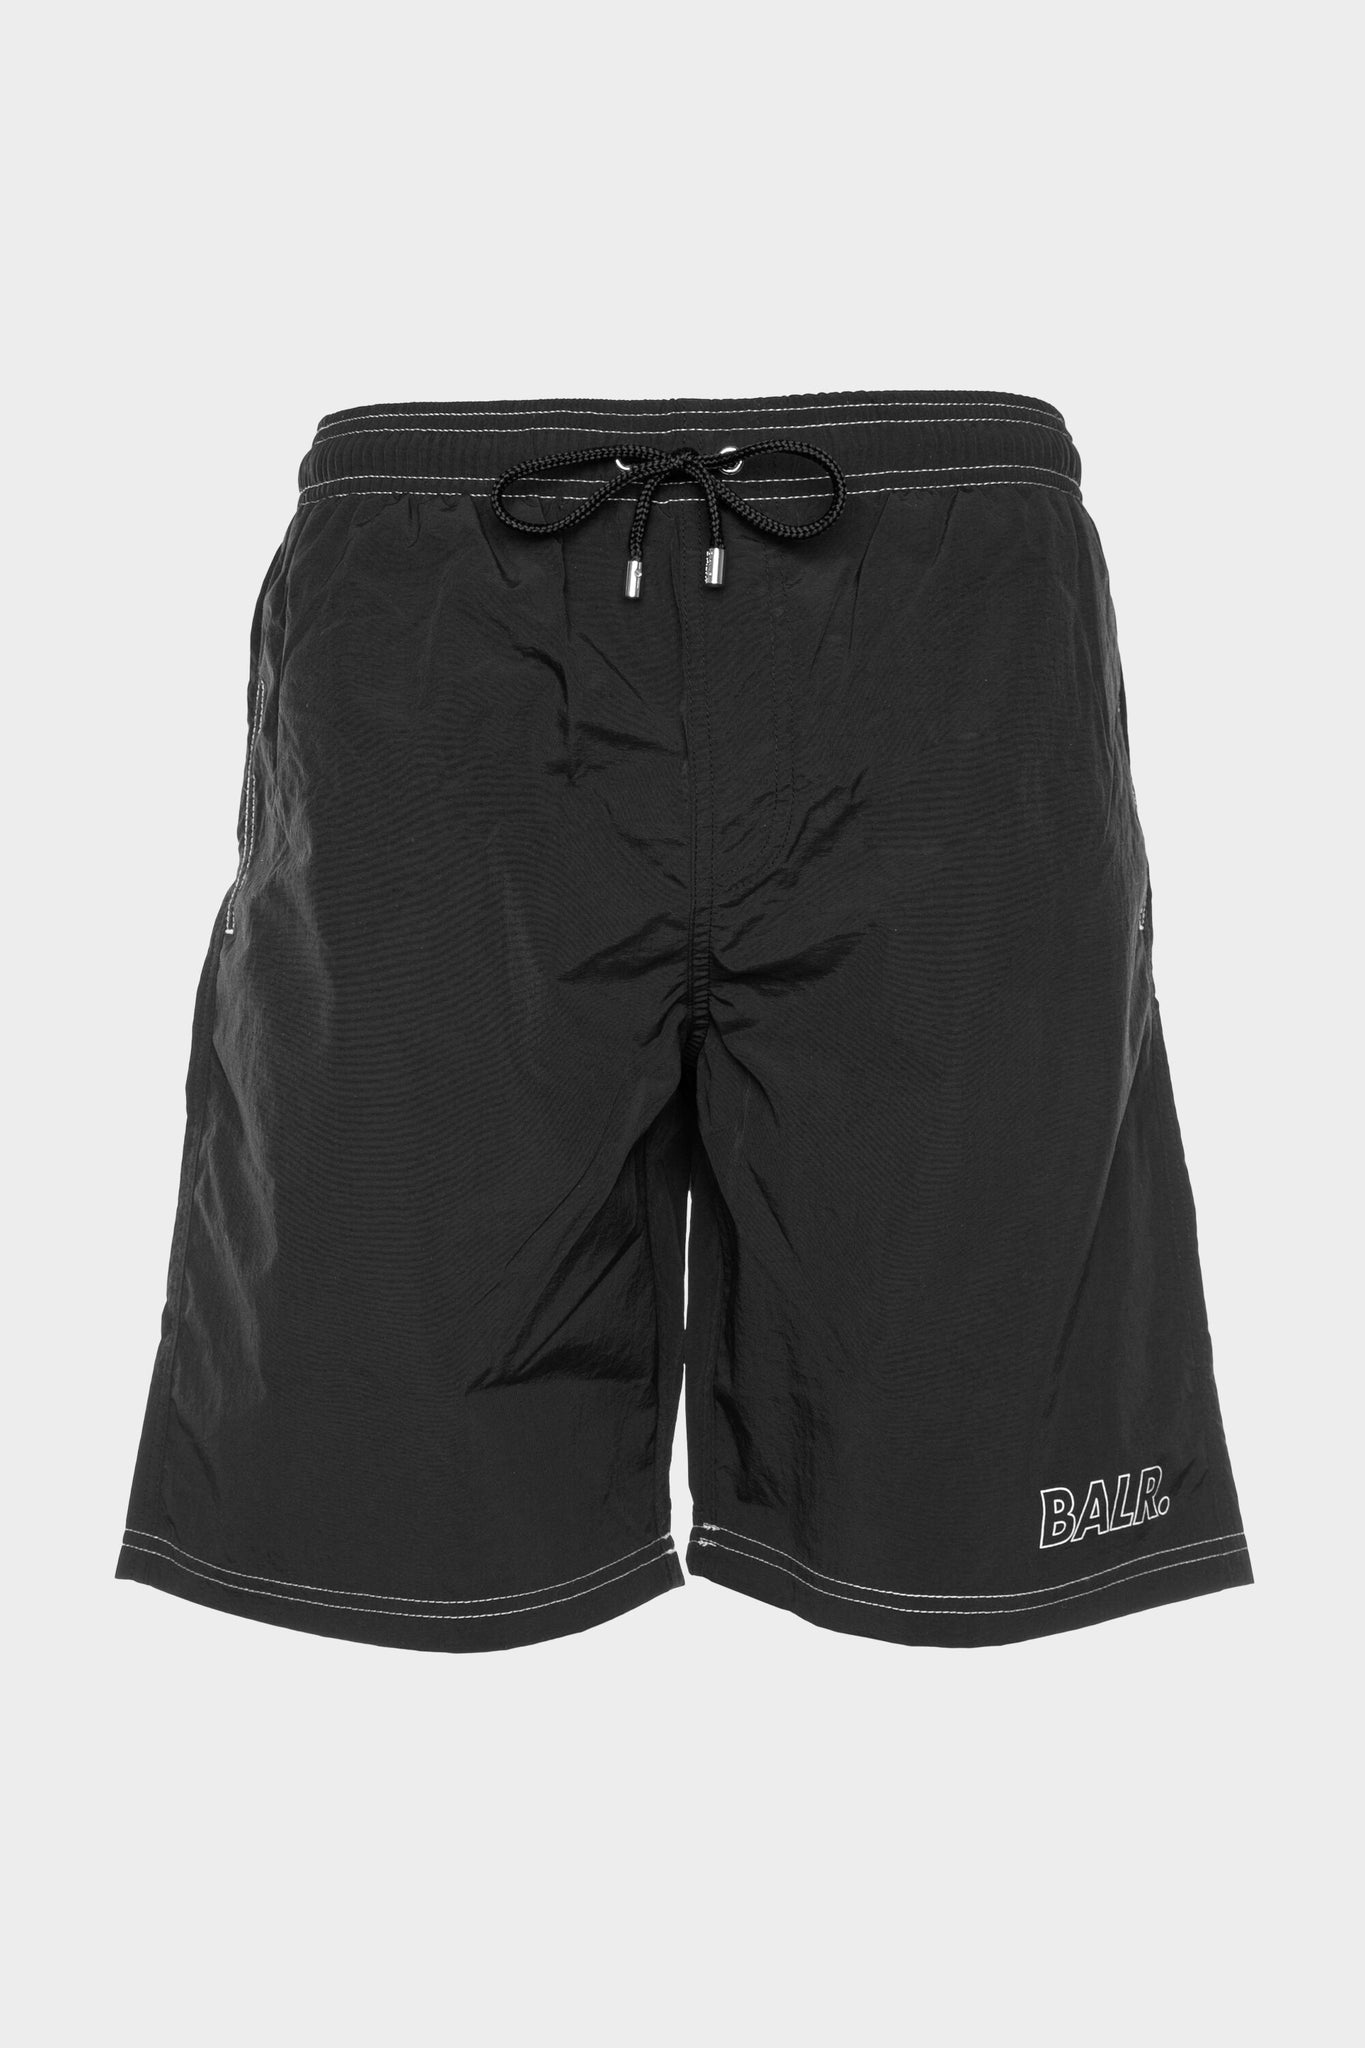 BALR. City Shorts Men Black